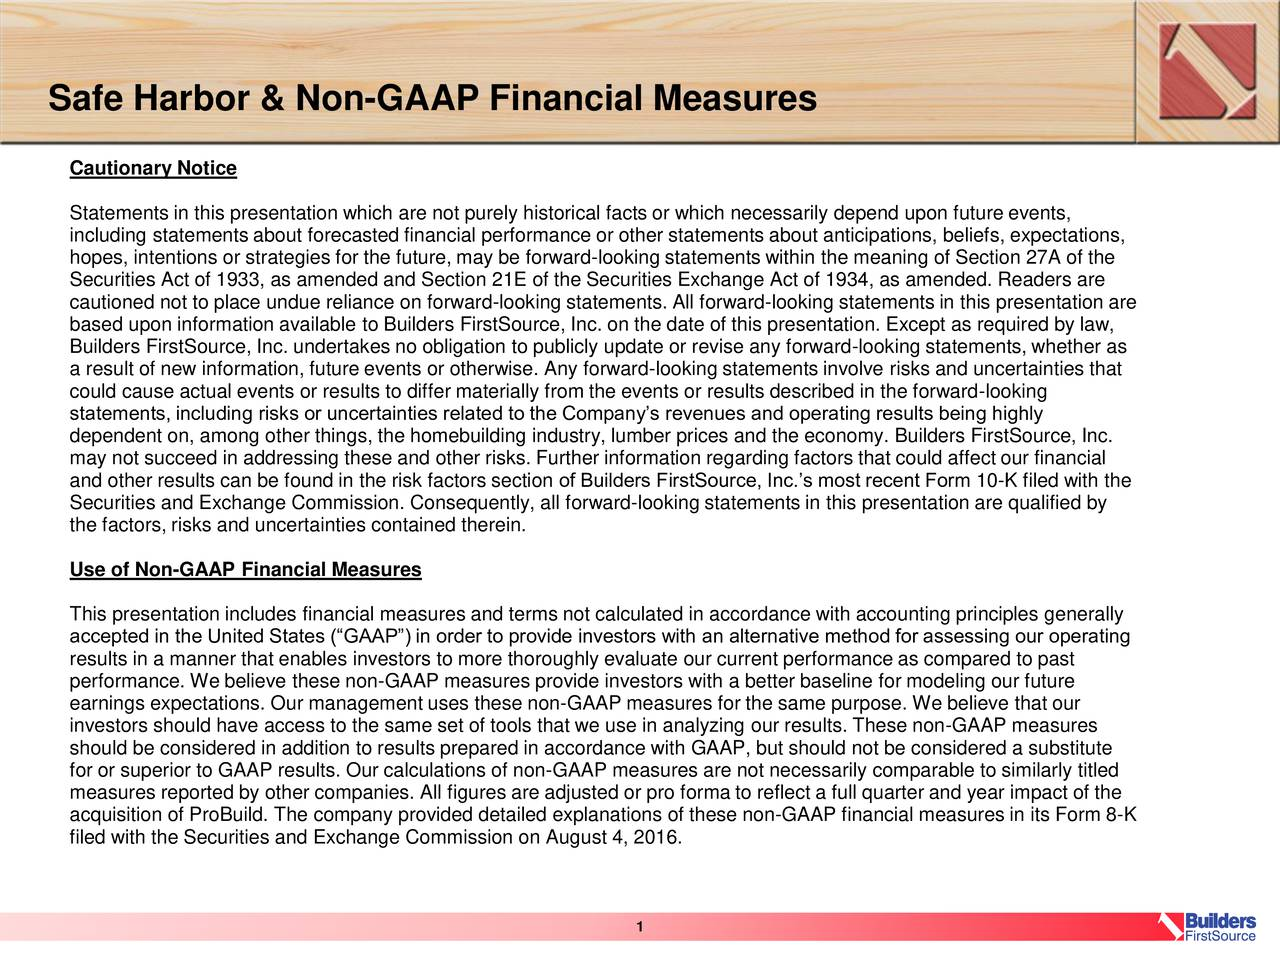 Cautionary Notice Statements in this presentation which are not purely historical facts or which necessarily depend upon future events, including statements about forecasted financial performance or other statements about anticipations, beliefs, expectations, hopes, intentions or strategies for the future, may be forward-looking statements within the meaning of Section 27A of the Securities Act of 1933, as amended and Section 21E of the Securities Exchange Act of 1934, as amended. Readers are cautioned not to place undue reliance on forward-looking statements. All forward-looking statements in this presentation are based upon information available to Builders FirstSource, Inc. on the date of this presentation. Except as required by law, Builders FirstSource, Inc. undertakes no obligation to publicly update or revise any forward-looking statements, whether as a result of new information, future events or otherwise. Any forward-looking statements involve risks and uncertainties that could cause actual events or results to differ materially from the events or results described in the forward-looking statements, including risks or uncertainties related to the Companys revenues and operating results being highly dependent on, among other things, the homebuilding industry, lumber prices and the economy. Builders FirstSource, Inc. may not succeed in addressing these and other risks. Further information regarding factors that could affect our financial and other results can be found in the risk factors section of Builders FirstSource, Inc.s most recent Form 10-K filed with the Securities and Exchange Commission. Consequently, all forward-looking statements in this presentation are qualified by the factors, risks and uncertainties contained therein. Use of Non-GAAP Financial Measures This presentation includes financial measures and terms not calculated in accordance with accounting principles generally accepted in the United States (GAAP) in order to provide investors with 